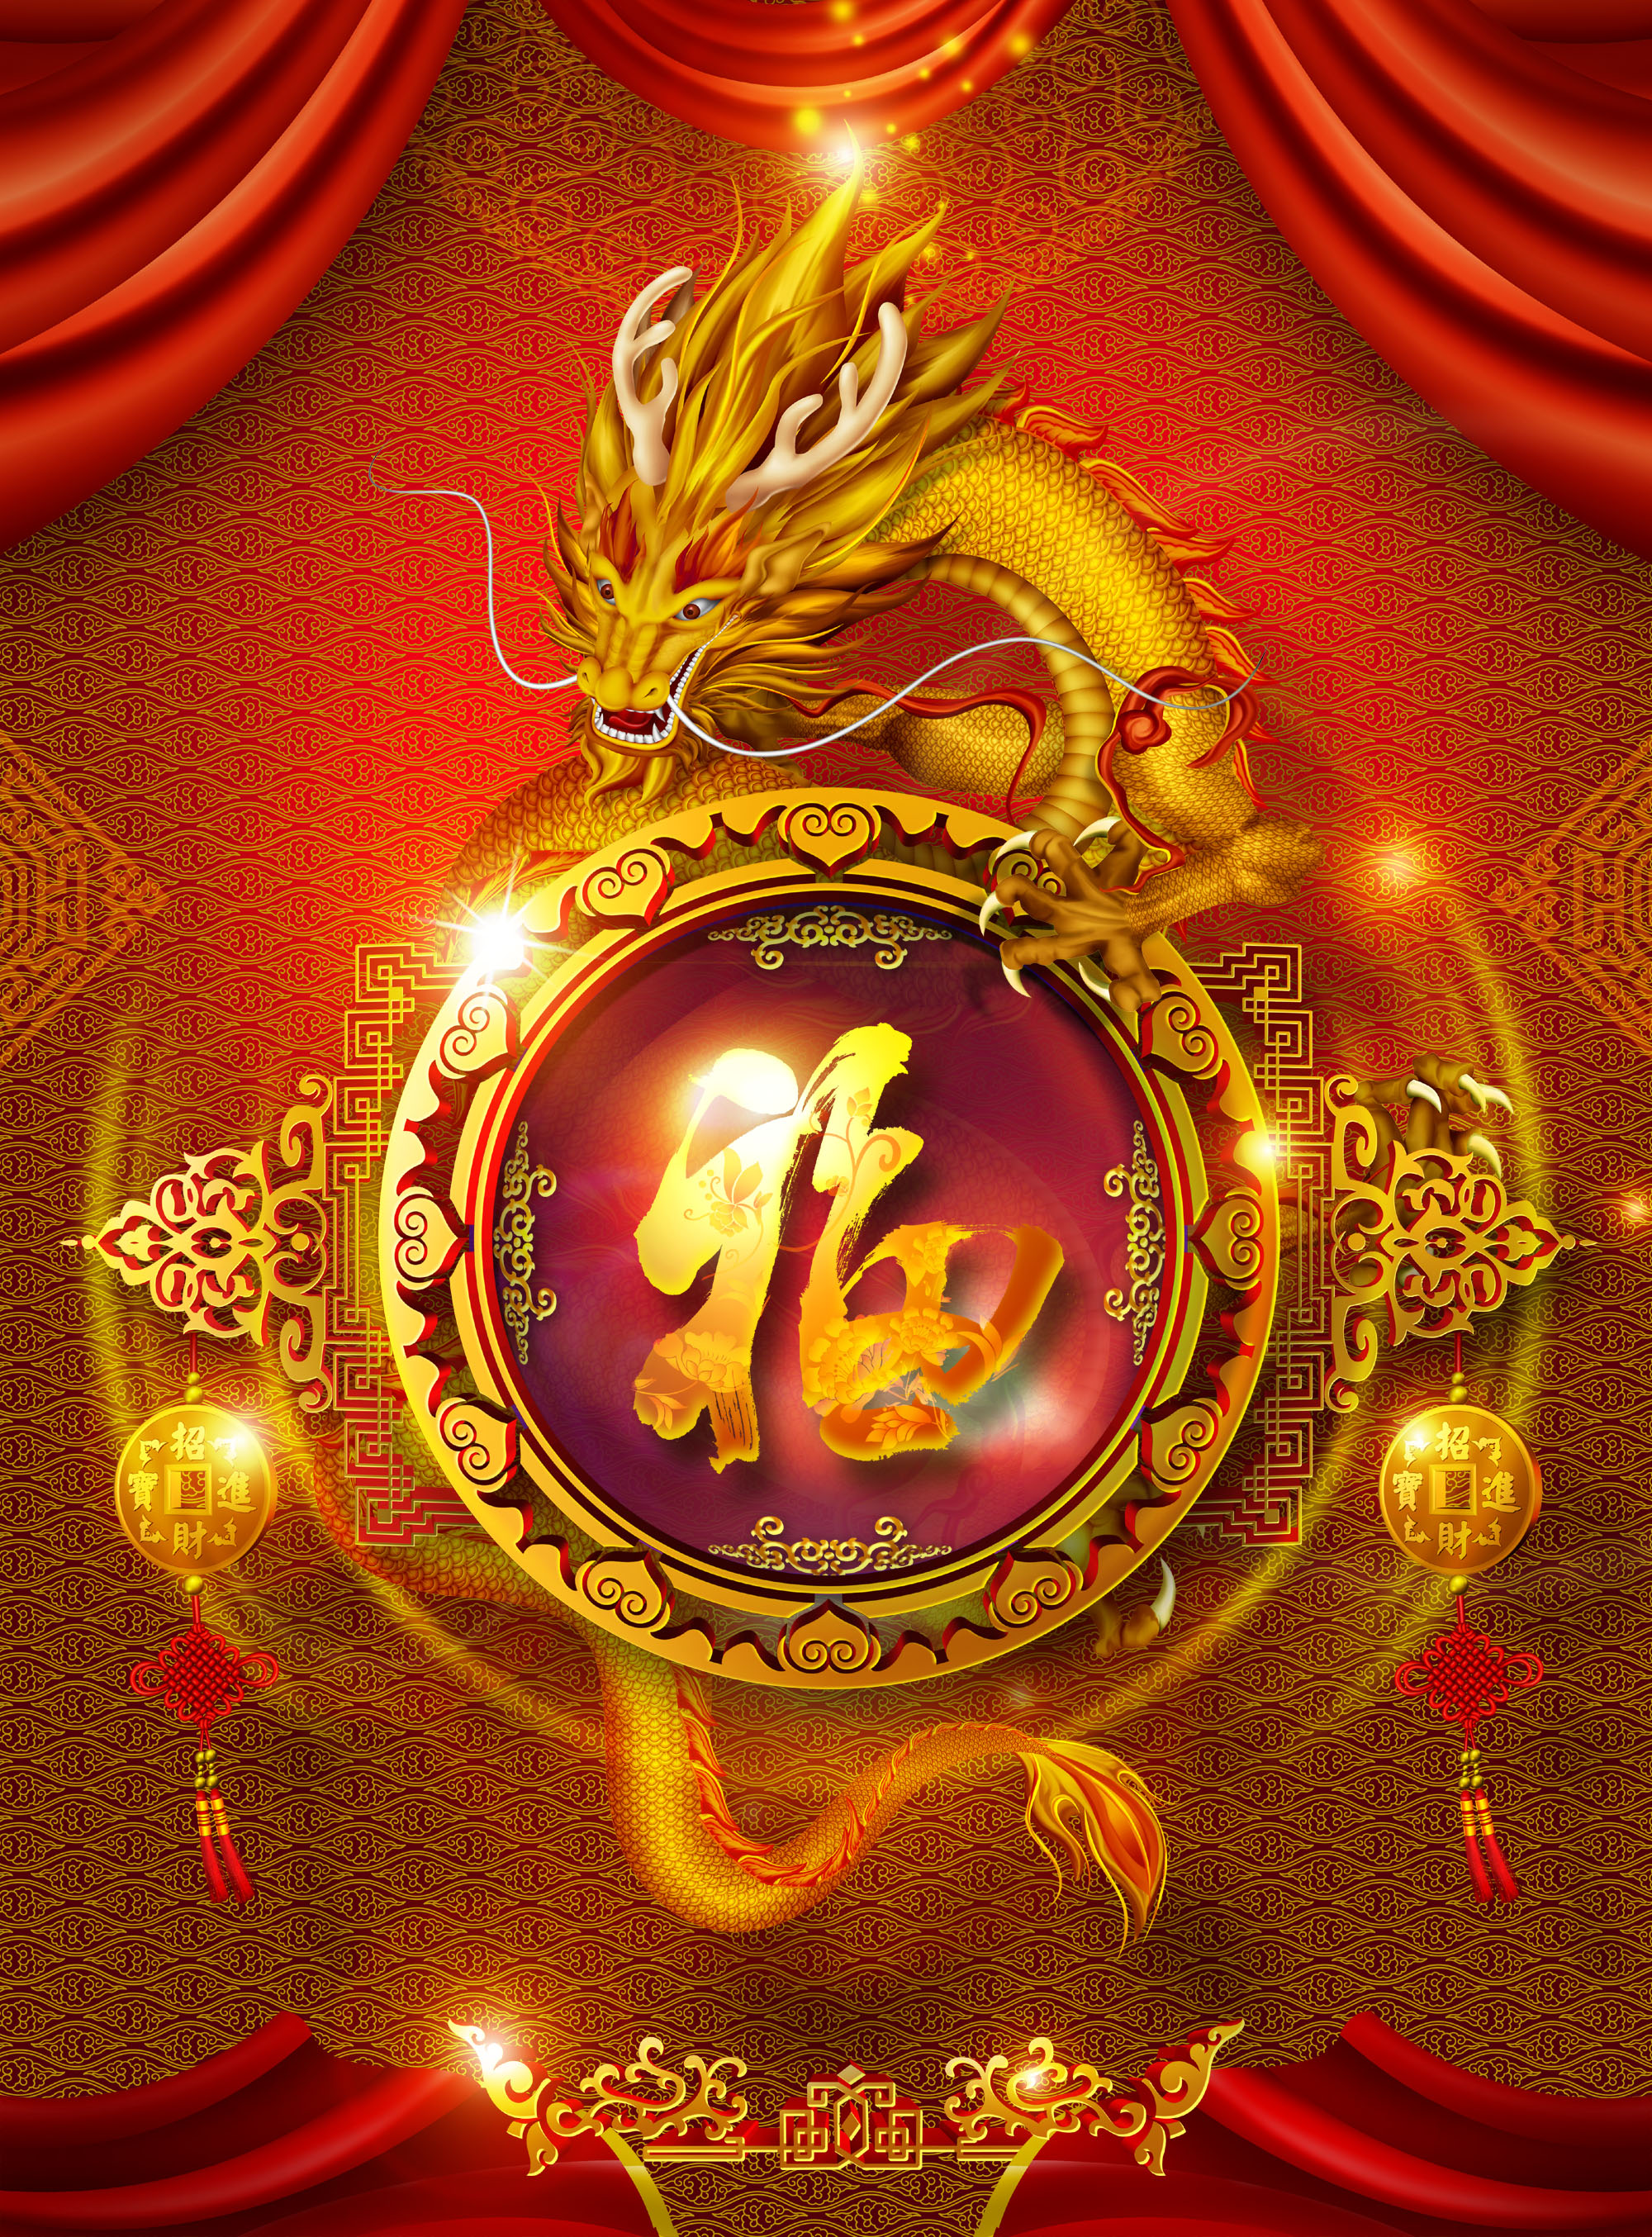 chinese style red dragon word blessing festive background